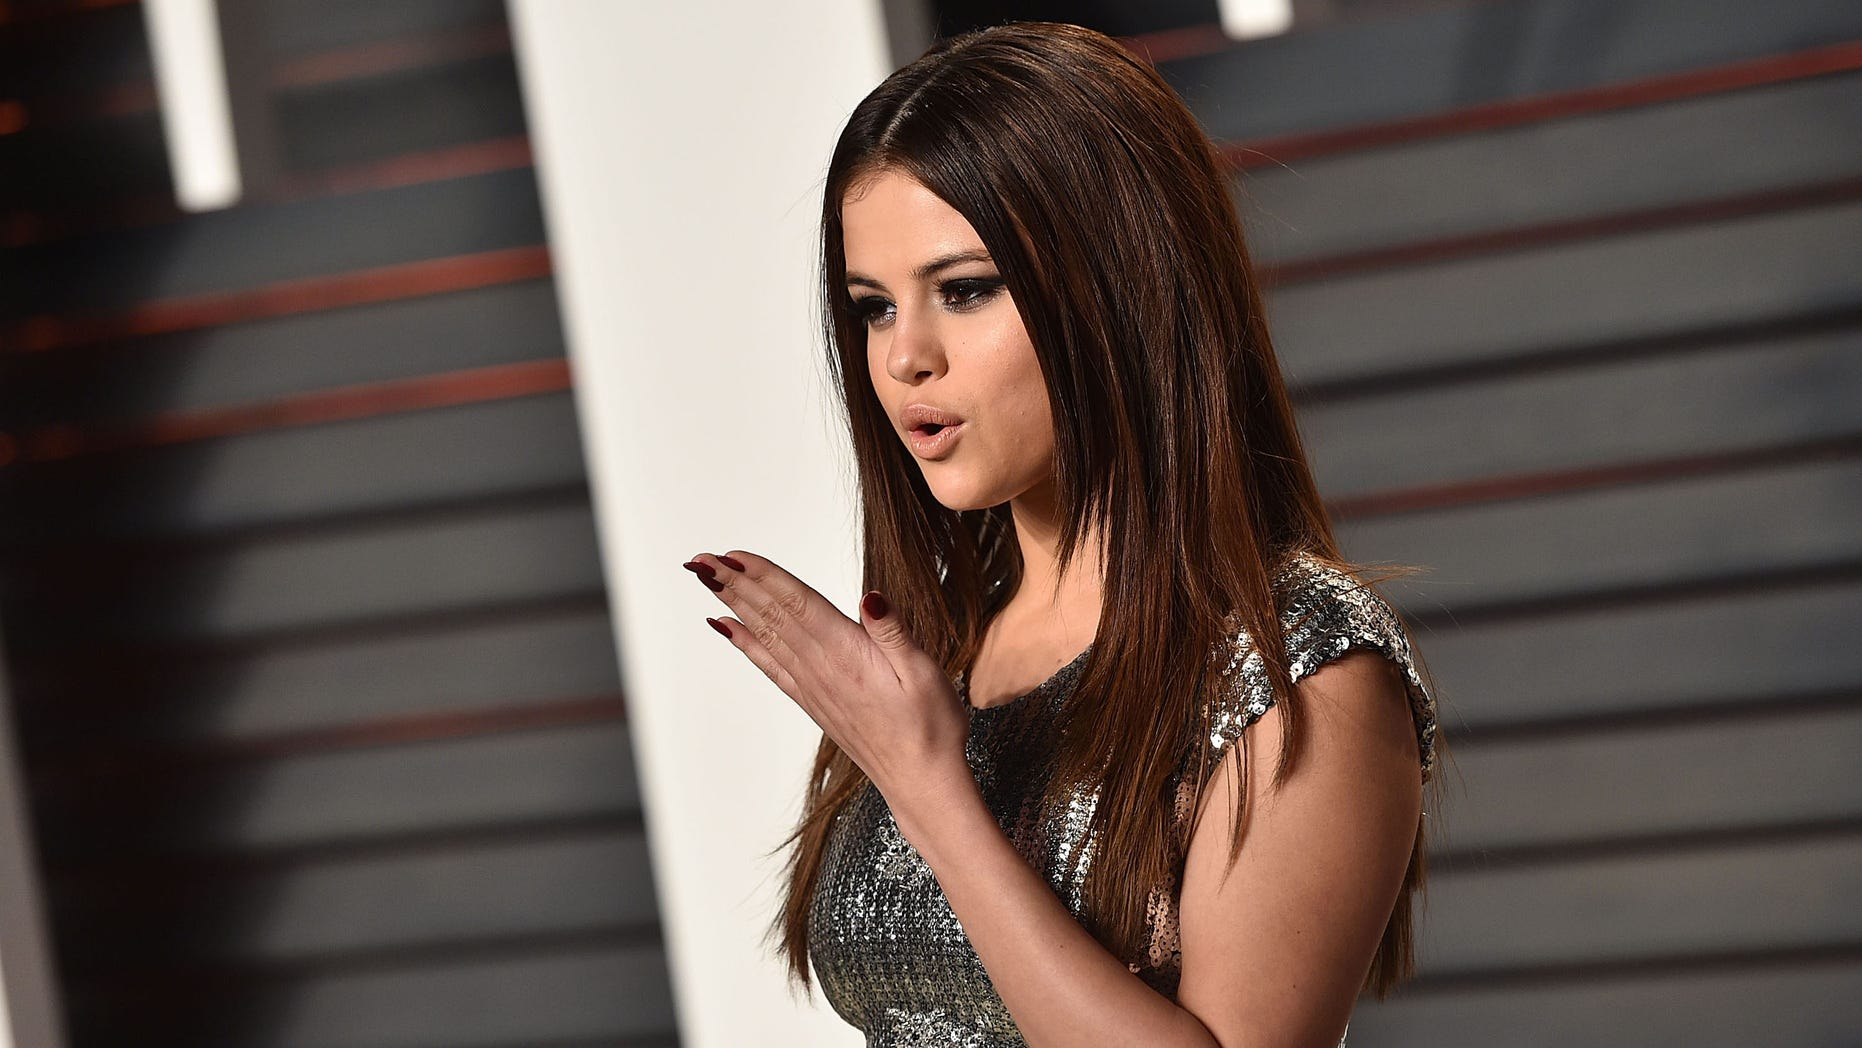 BEVERLY HILLS, CA - FEBRUARY 28:  Actress Selena Gomez arrives at the 2016 Vanity Fair Oscar Party Hosted By Graydon Carter at Wallis Annenberg Center for the Performing Arts on February 28, 2016 in Beverly Hills, California.  (Photo by John Shearer/Getty Images)